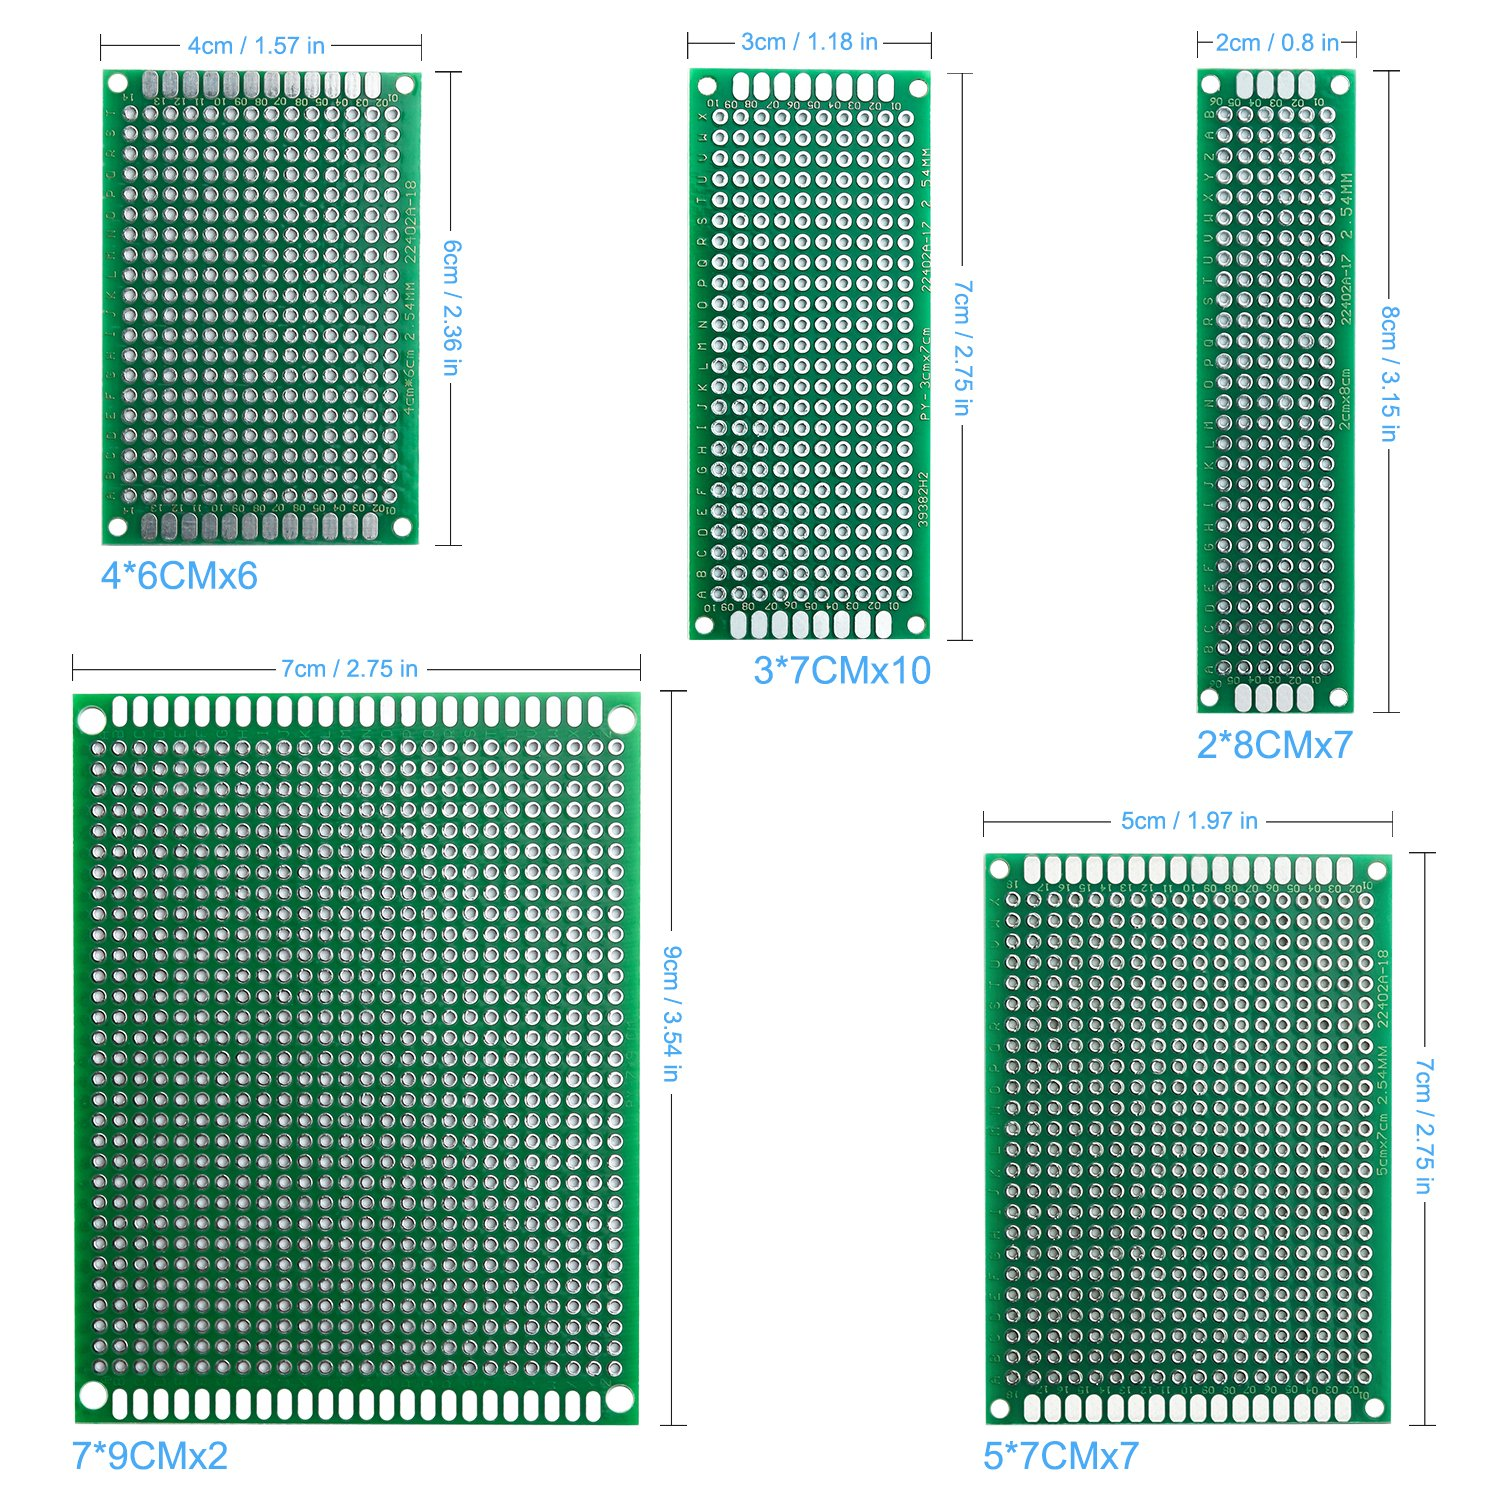 Elegoo 32 Pcs Double Sided Pcb Board Prototype Kit For Diy Soldering 10 50mmx70mm Single Side Copper Cover Circuit Stripboard With 5 Sizes Compatible Arduino Kits Tools Home Improvement